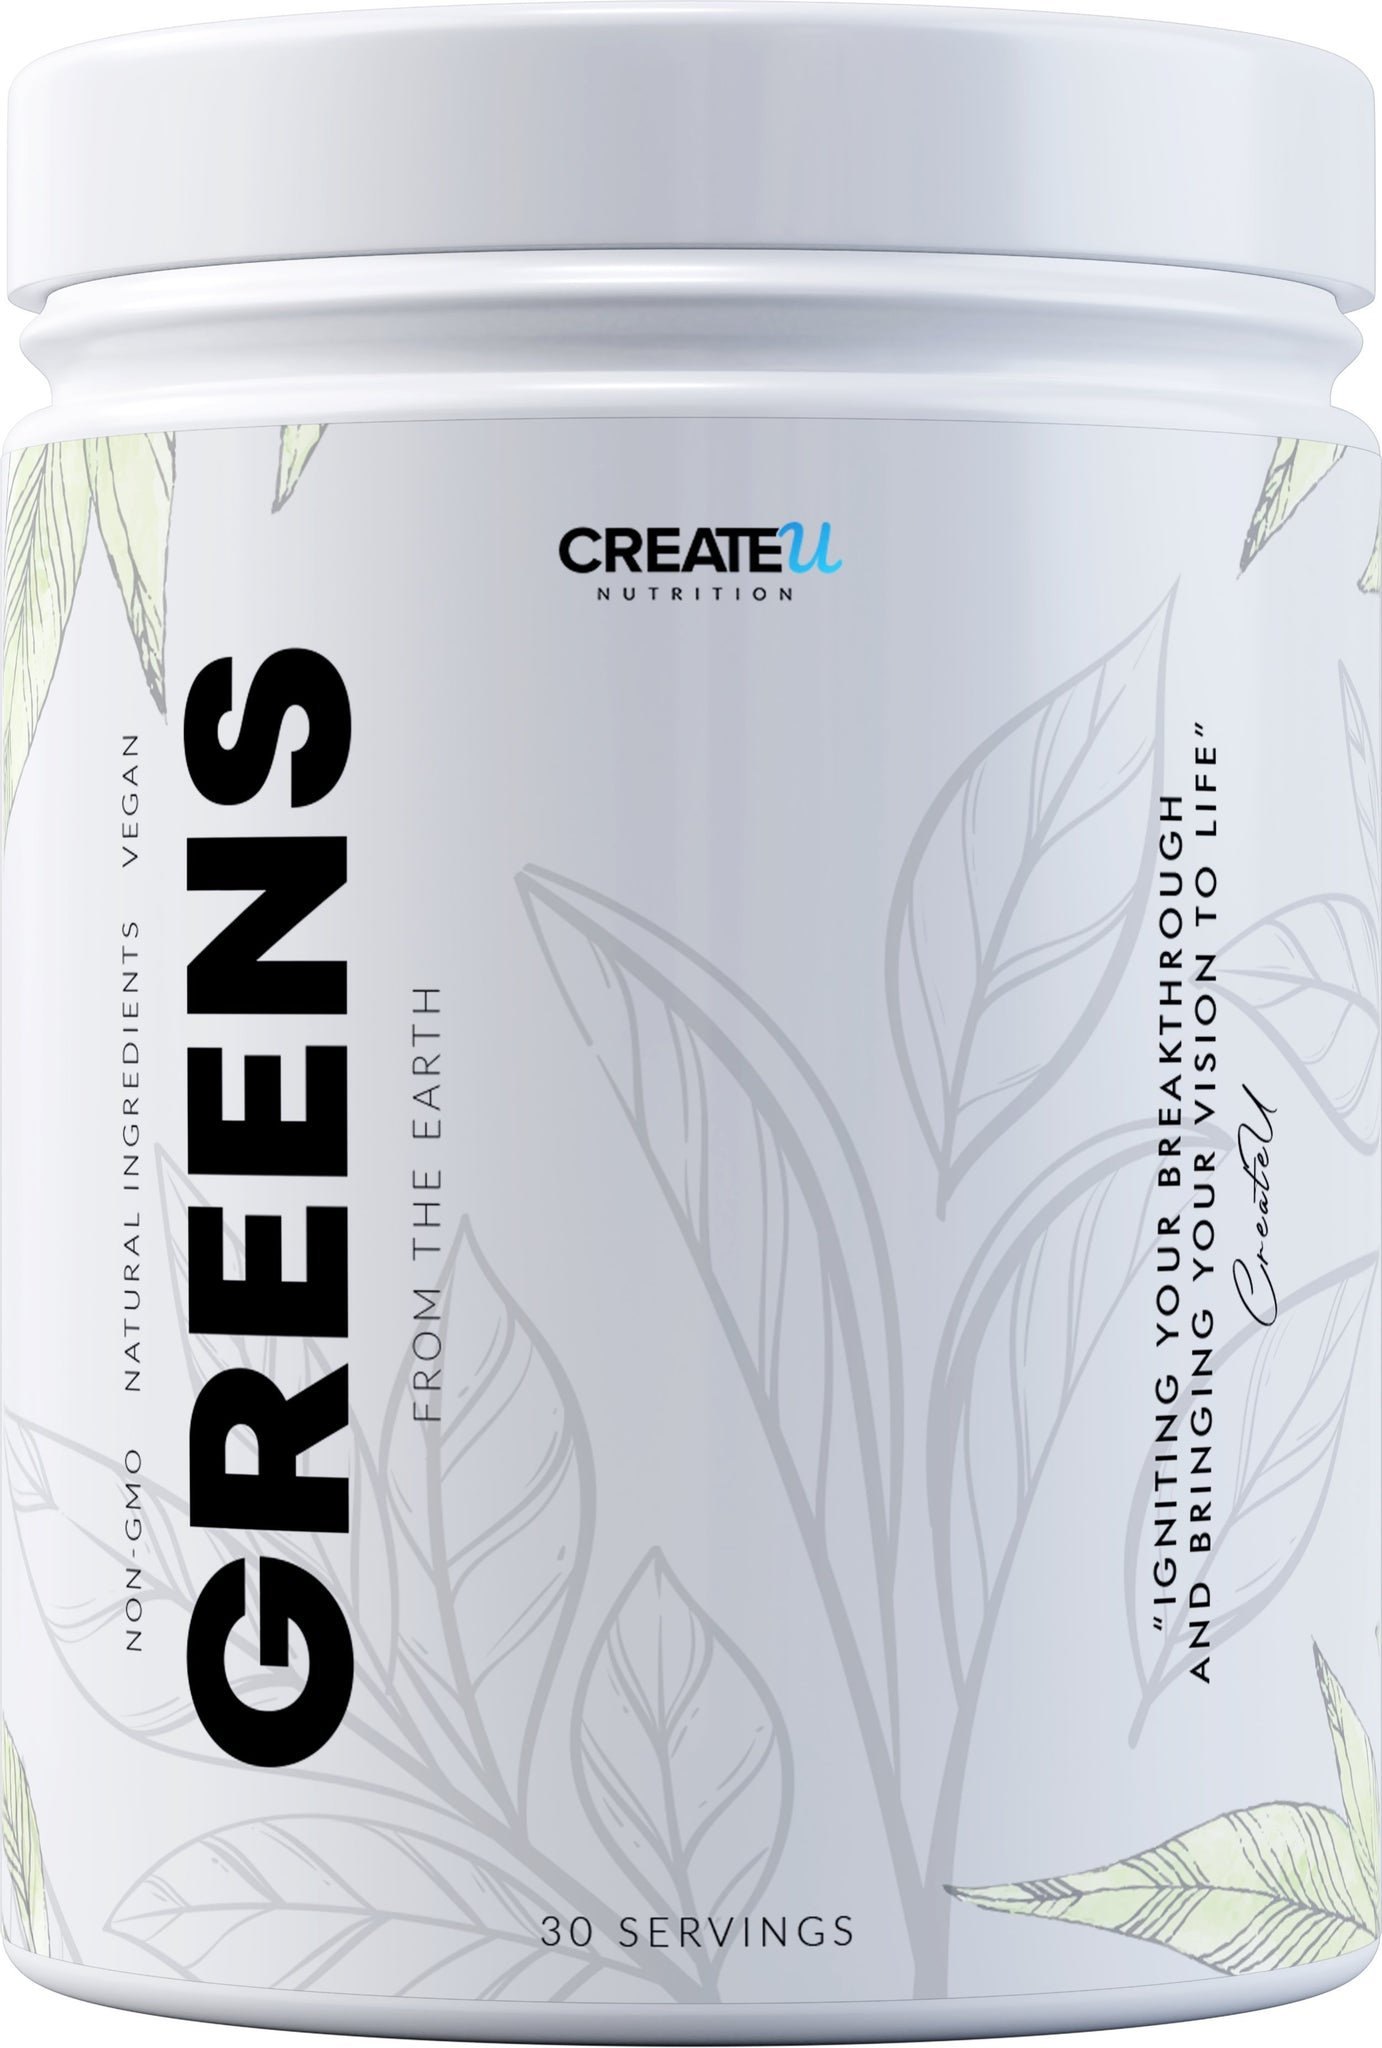 Brittany - Green Juice (35 Servings) supplement CreateUNutrition.com